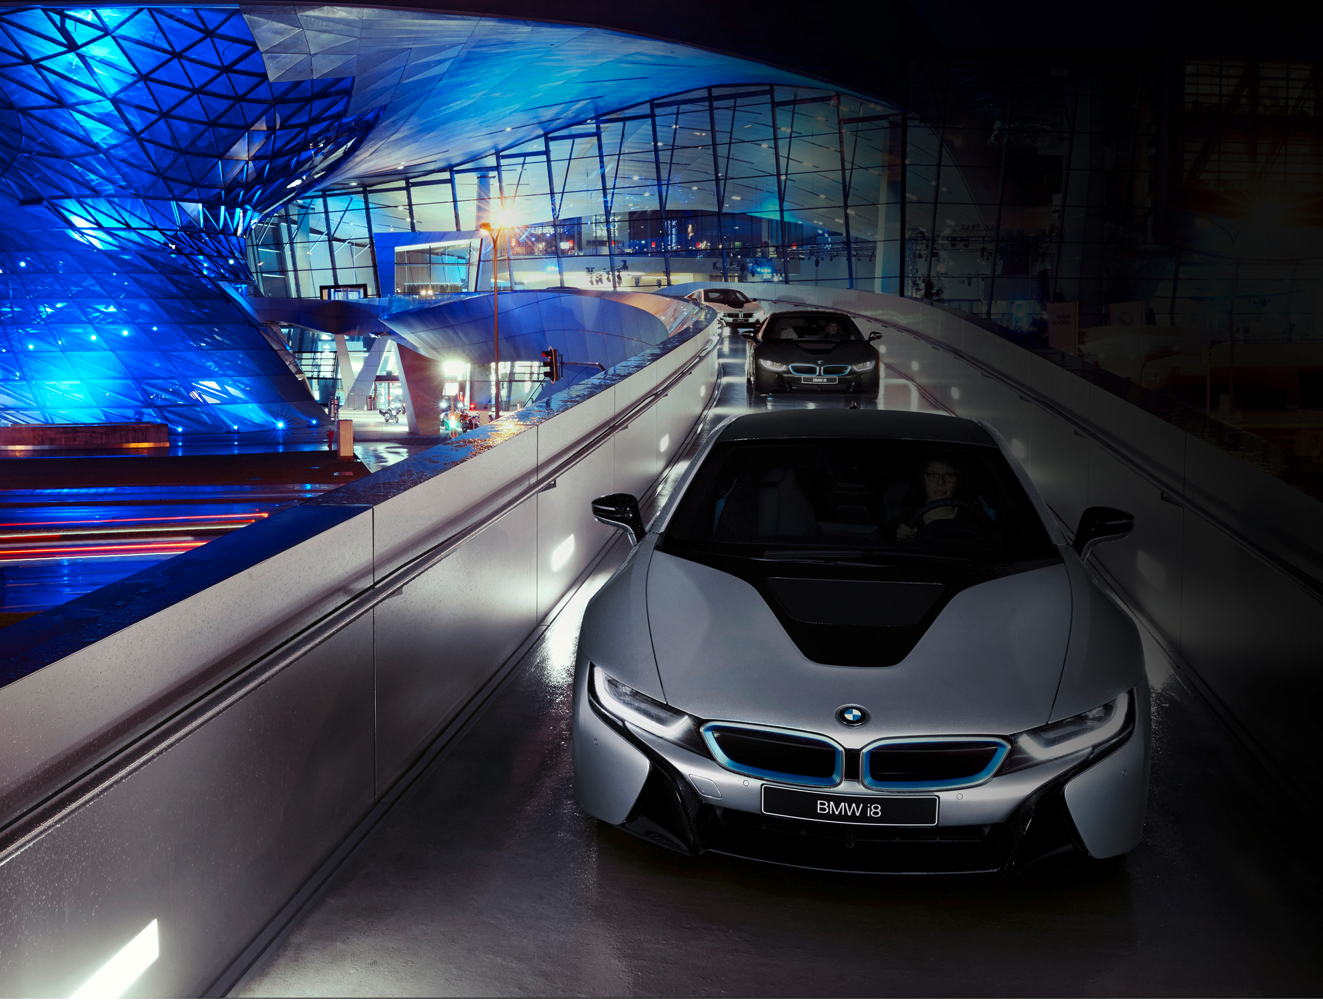 BMW to use the HERE Open Location Platform to develop digital driving services